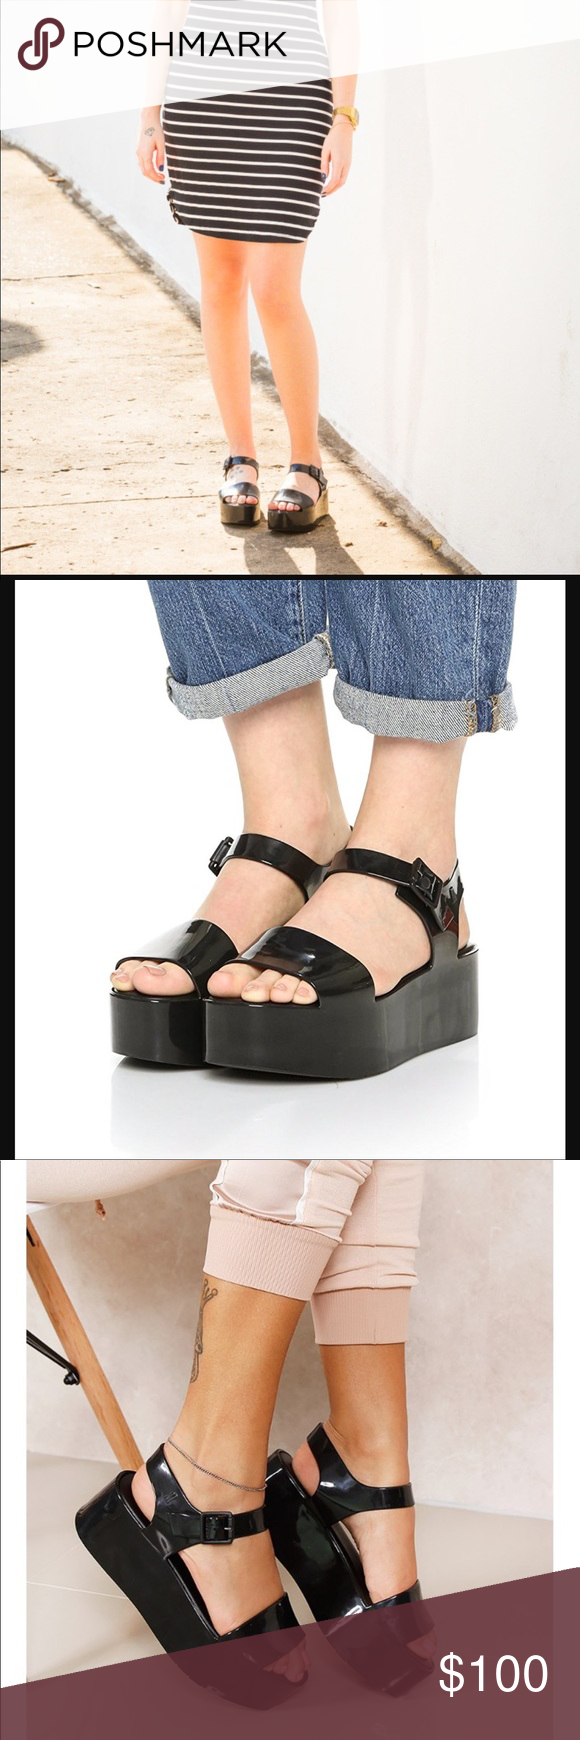 f3305d216765e New condition never worn without box. Platform Jelly sandal in black.  Adorable